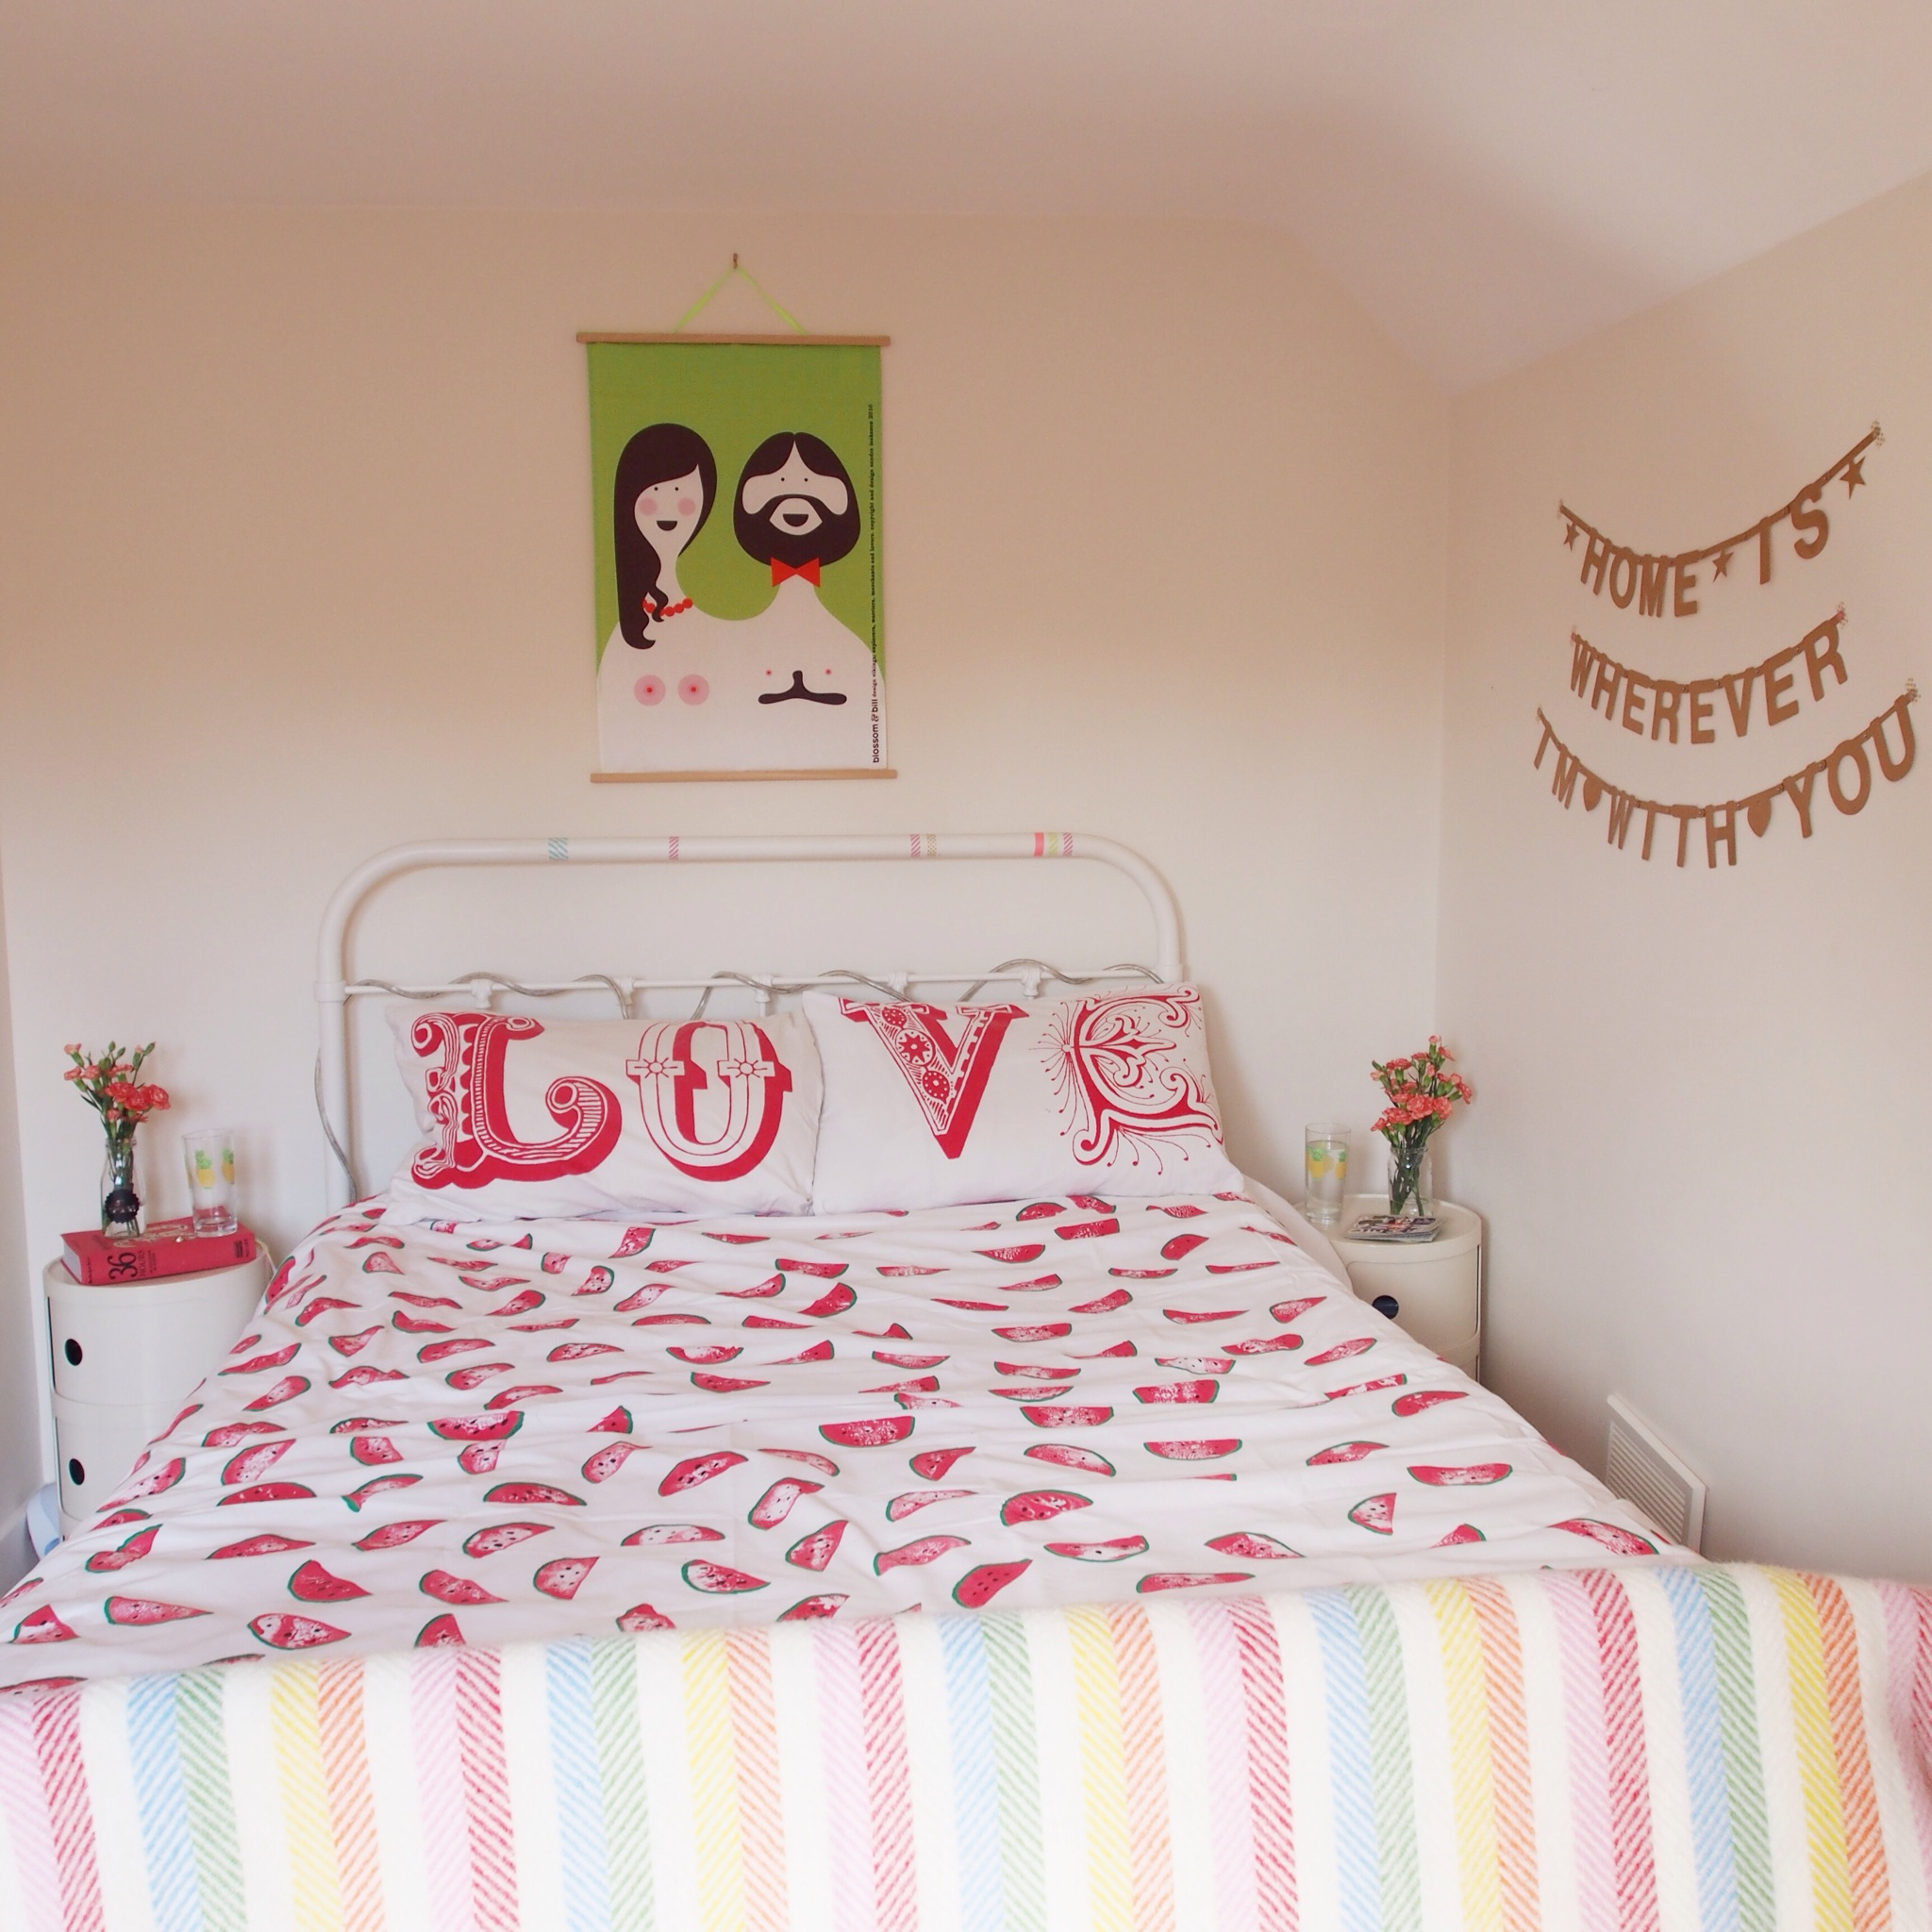 DIY watermelon bed sheets